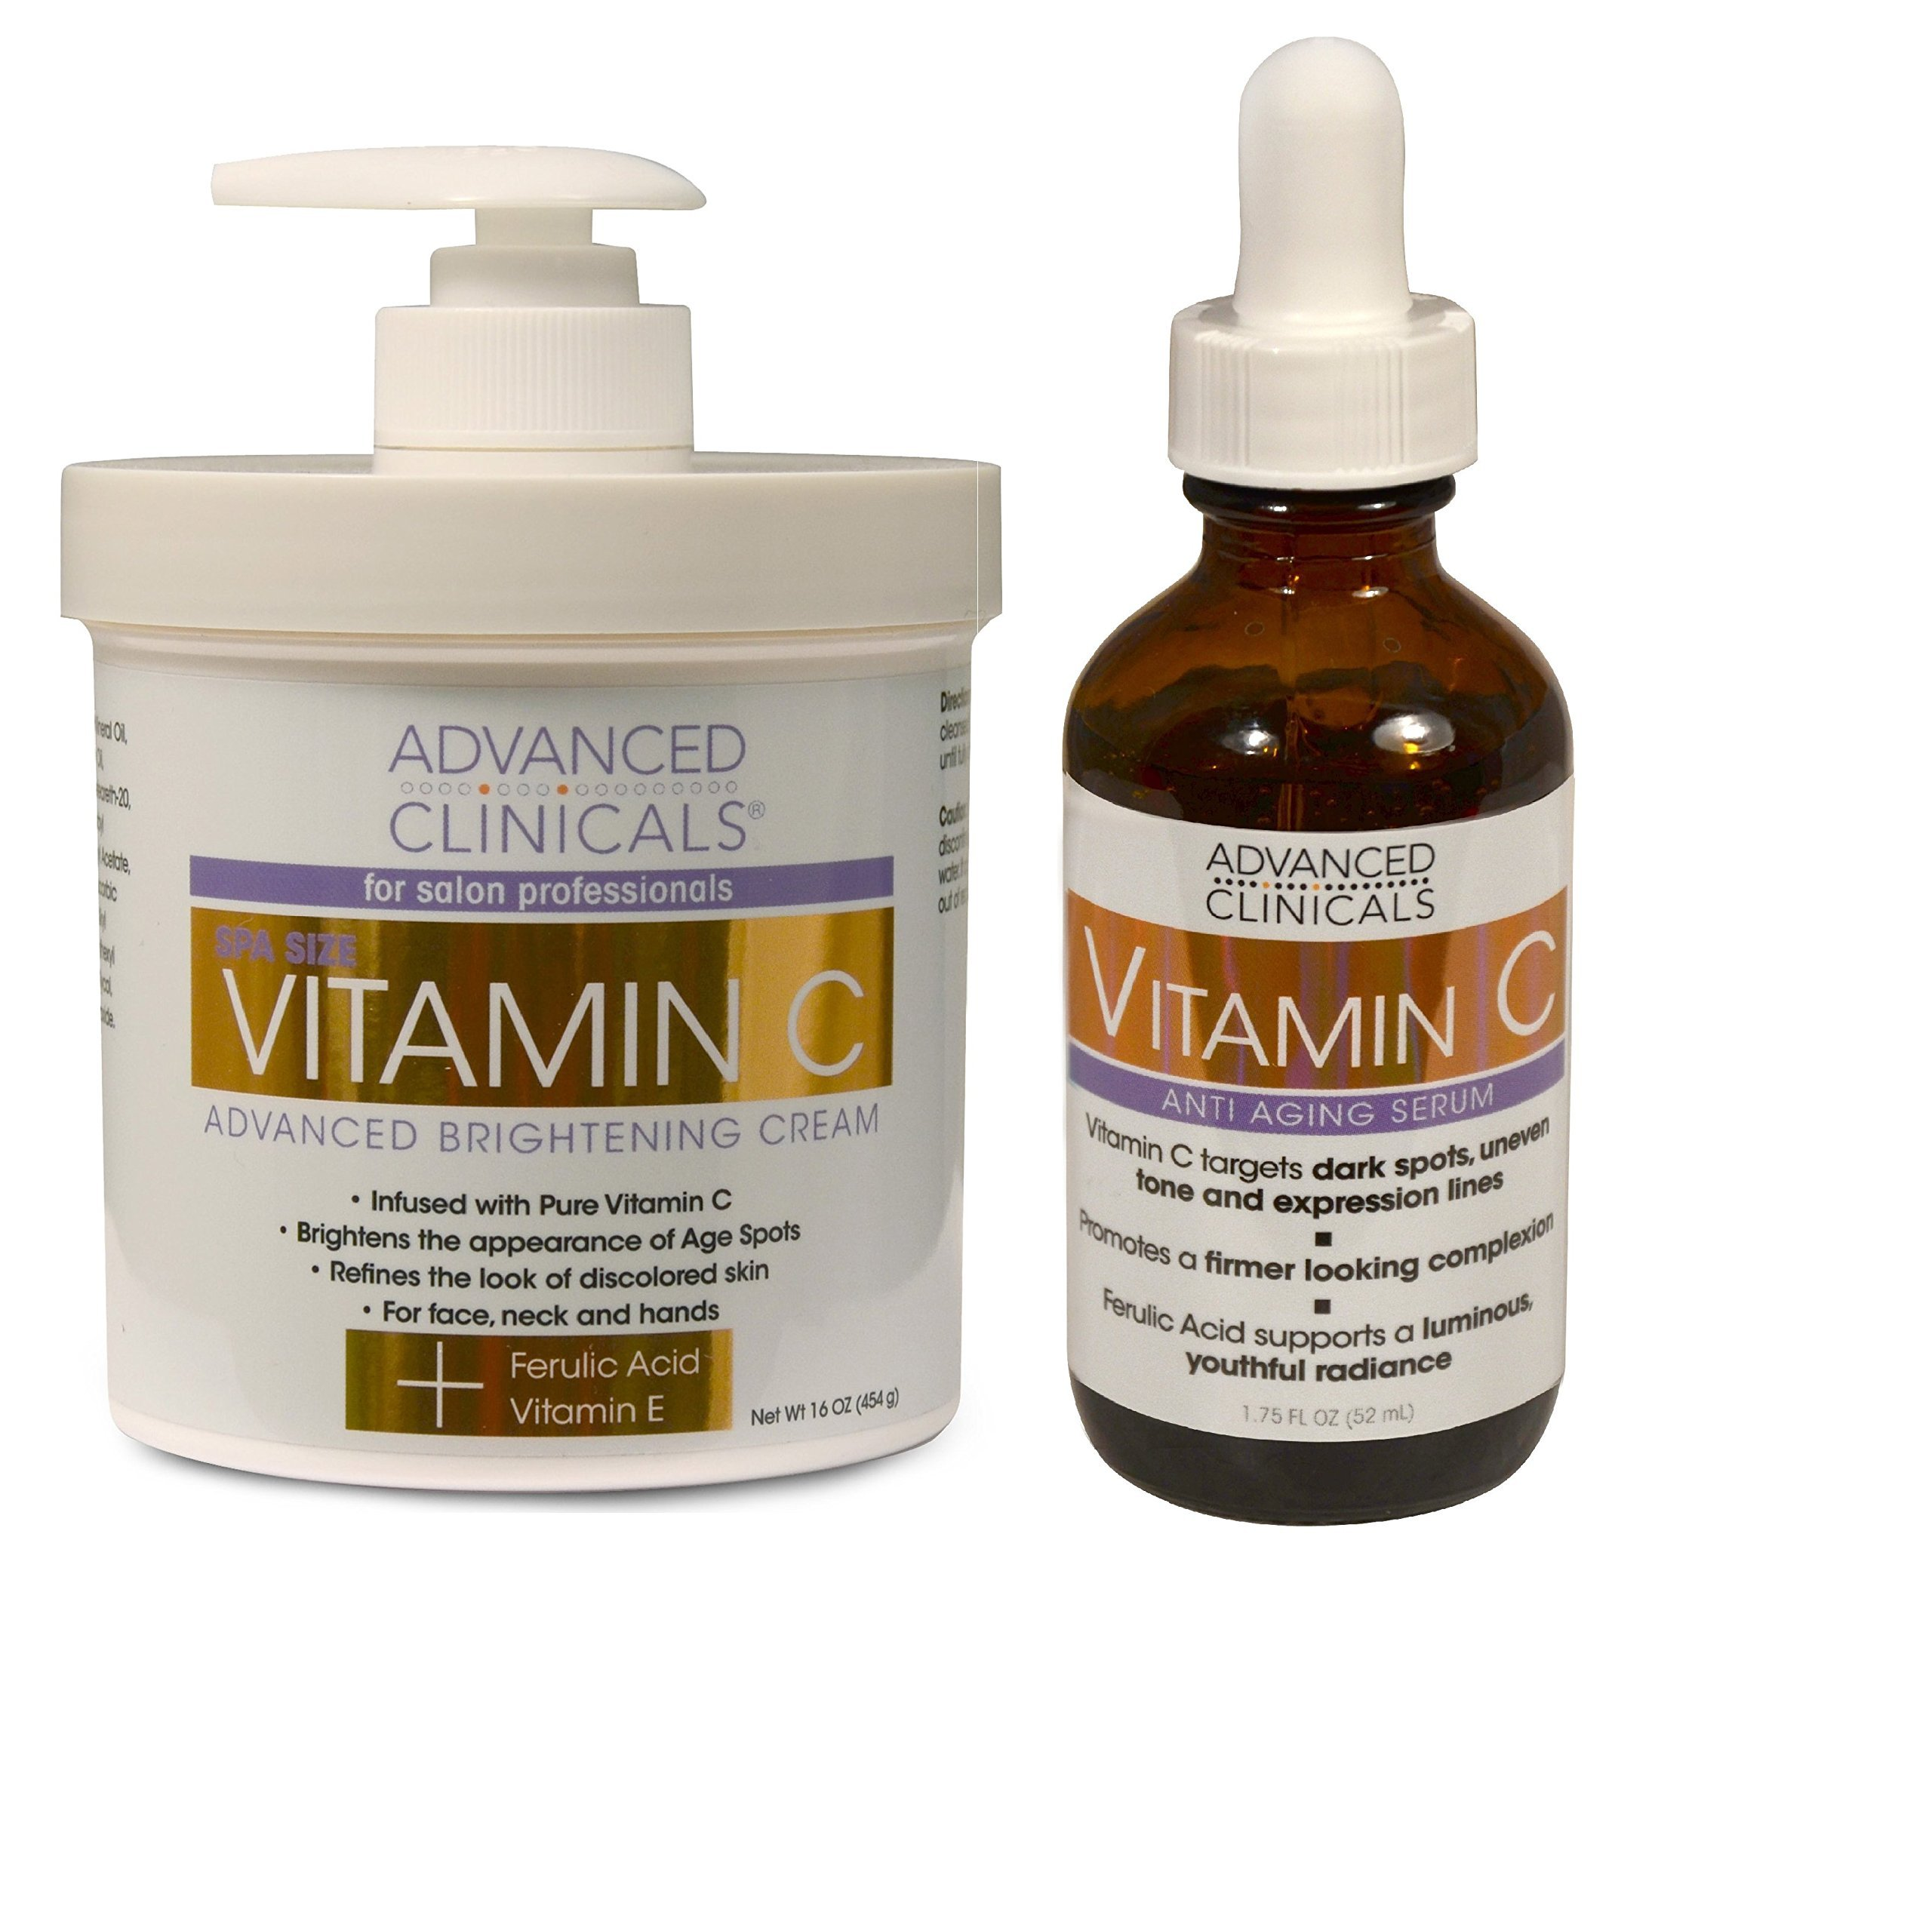 Advanced Clinicals Vitamin C Skin Care set for face and body. Spa Size 16oz Vitamin C cream and Vitamin C face serum for dark spots, age spots, uneven skin tone in as little as 4 weeks! by Advanced Clinicals